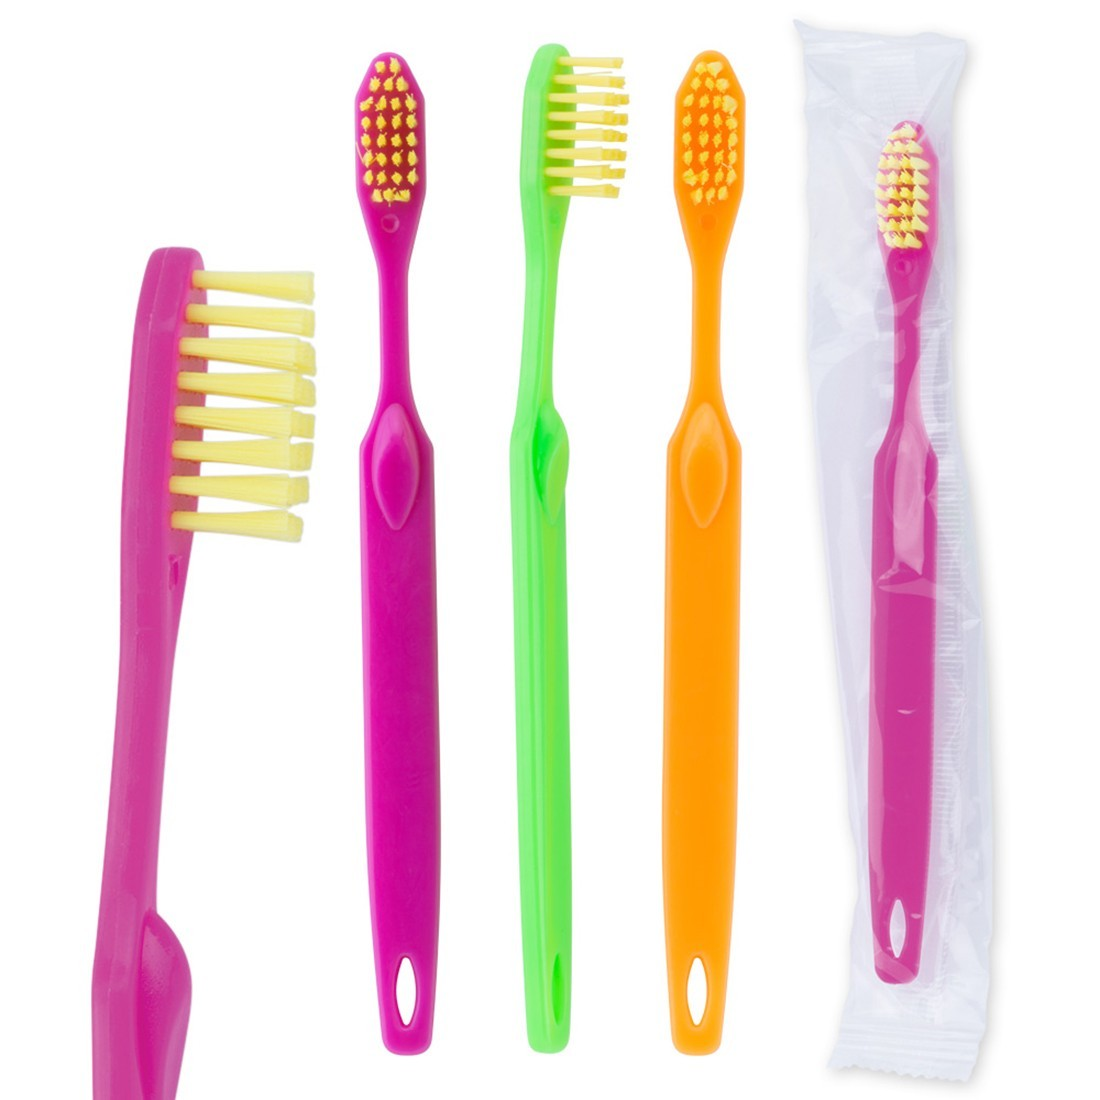 SmileCare Youth Neon Toothbrushes [image]